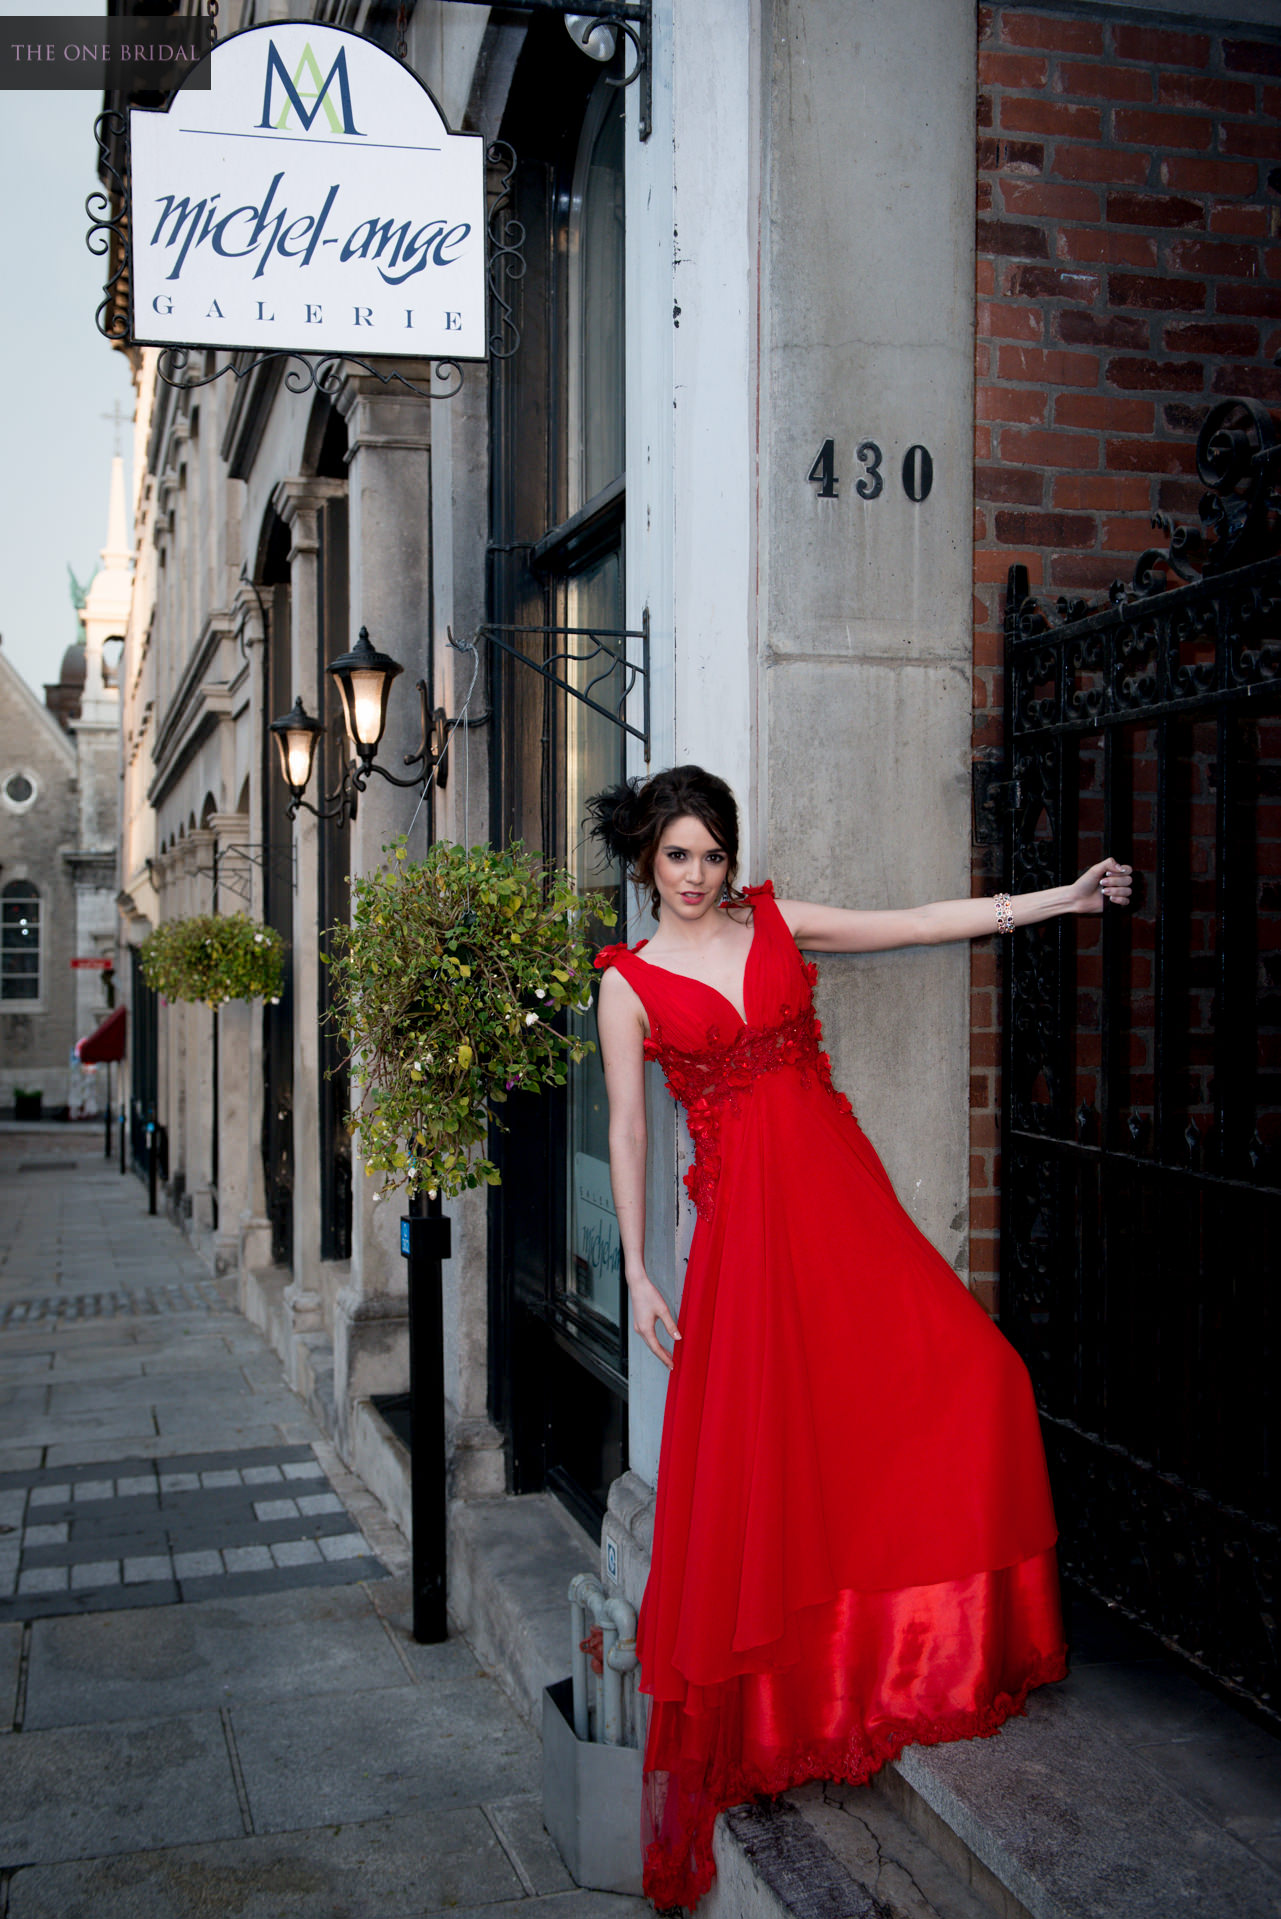 the-one-bridal-evening-dress-montreal-10